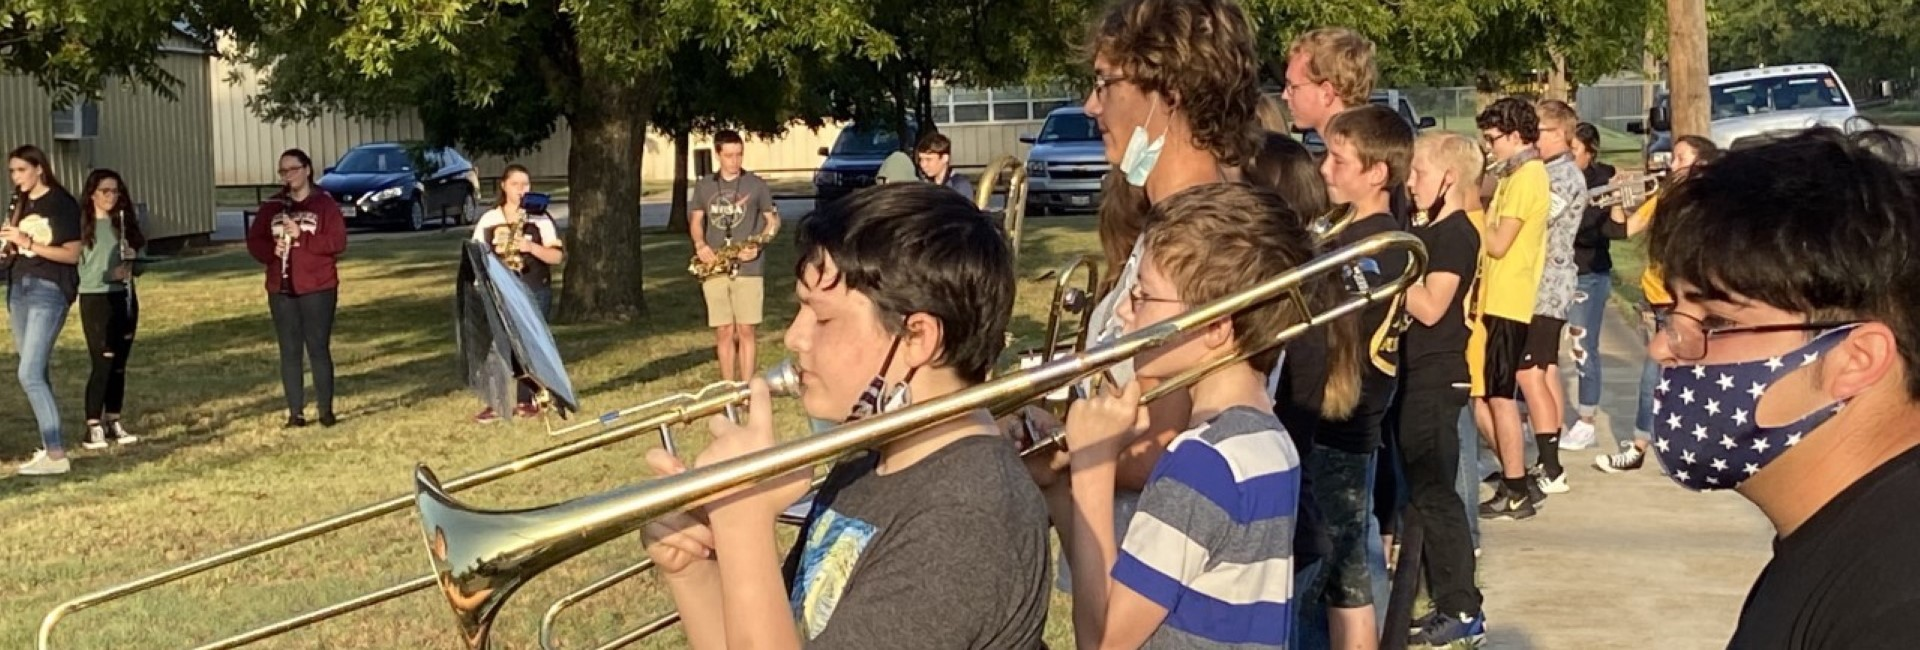 Band plays at outdoor pep rally